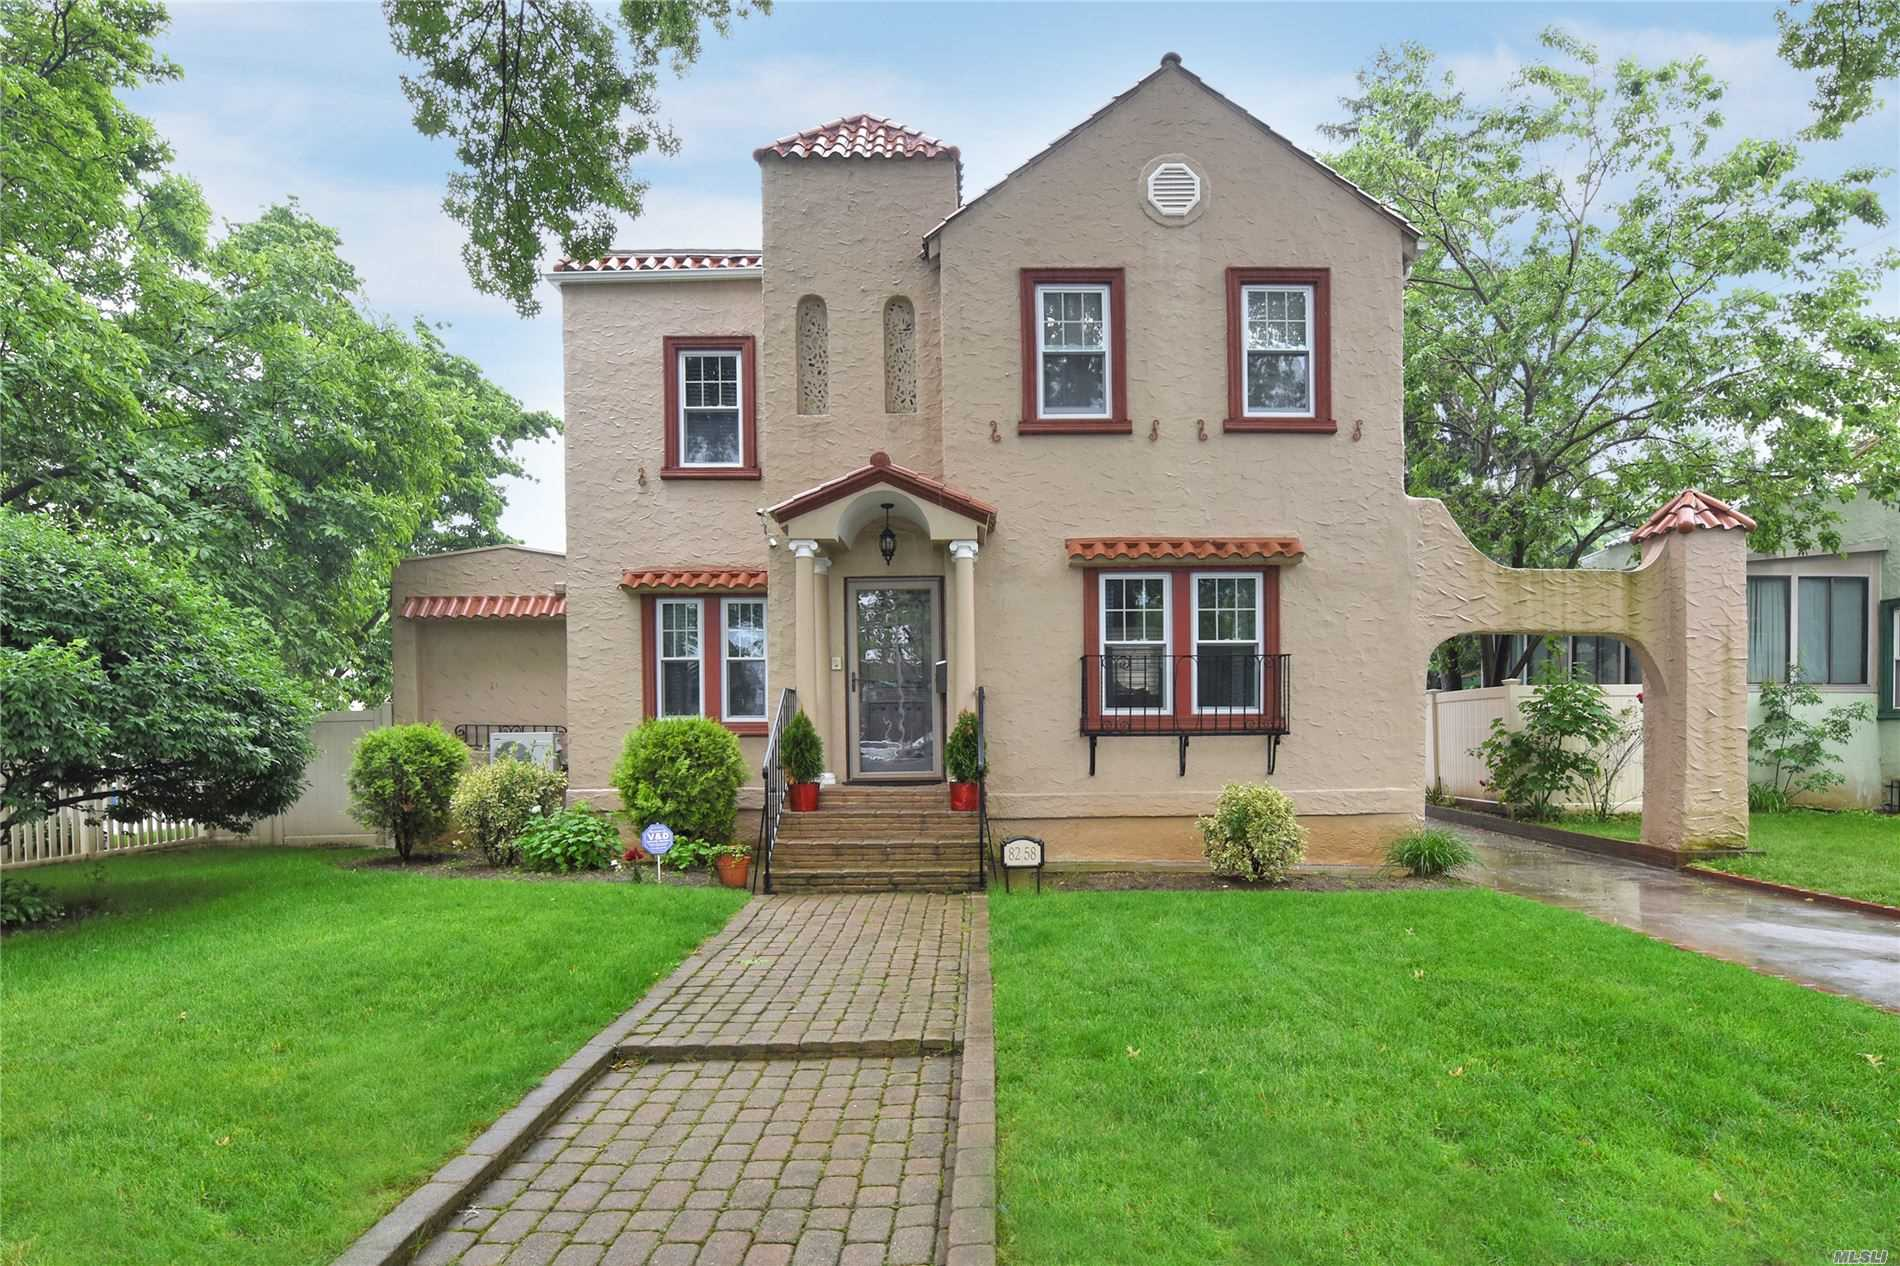 BEAUTIFUL HOME LOCATED IN BELLEROSE MANOR FEATURES CENTRAL VACUUM, SECURITY CAMERAS, IN GROUND SPRINKLERS, FORMAL DINING ROOM, LIVING ROOM WITH FIRE PLACE, 5 SPACIOUS BEDROOMS, EAT-IN-KITCHEN WITH STAINLESS STEEL APPLIANCES..PERFECT HOME TO ENTERTAIN YOUR FAMILY AND FRIENDS!! ... A MUST SEE!!!